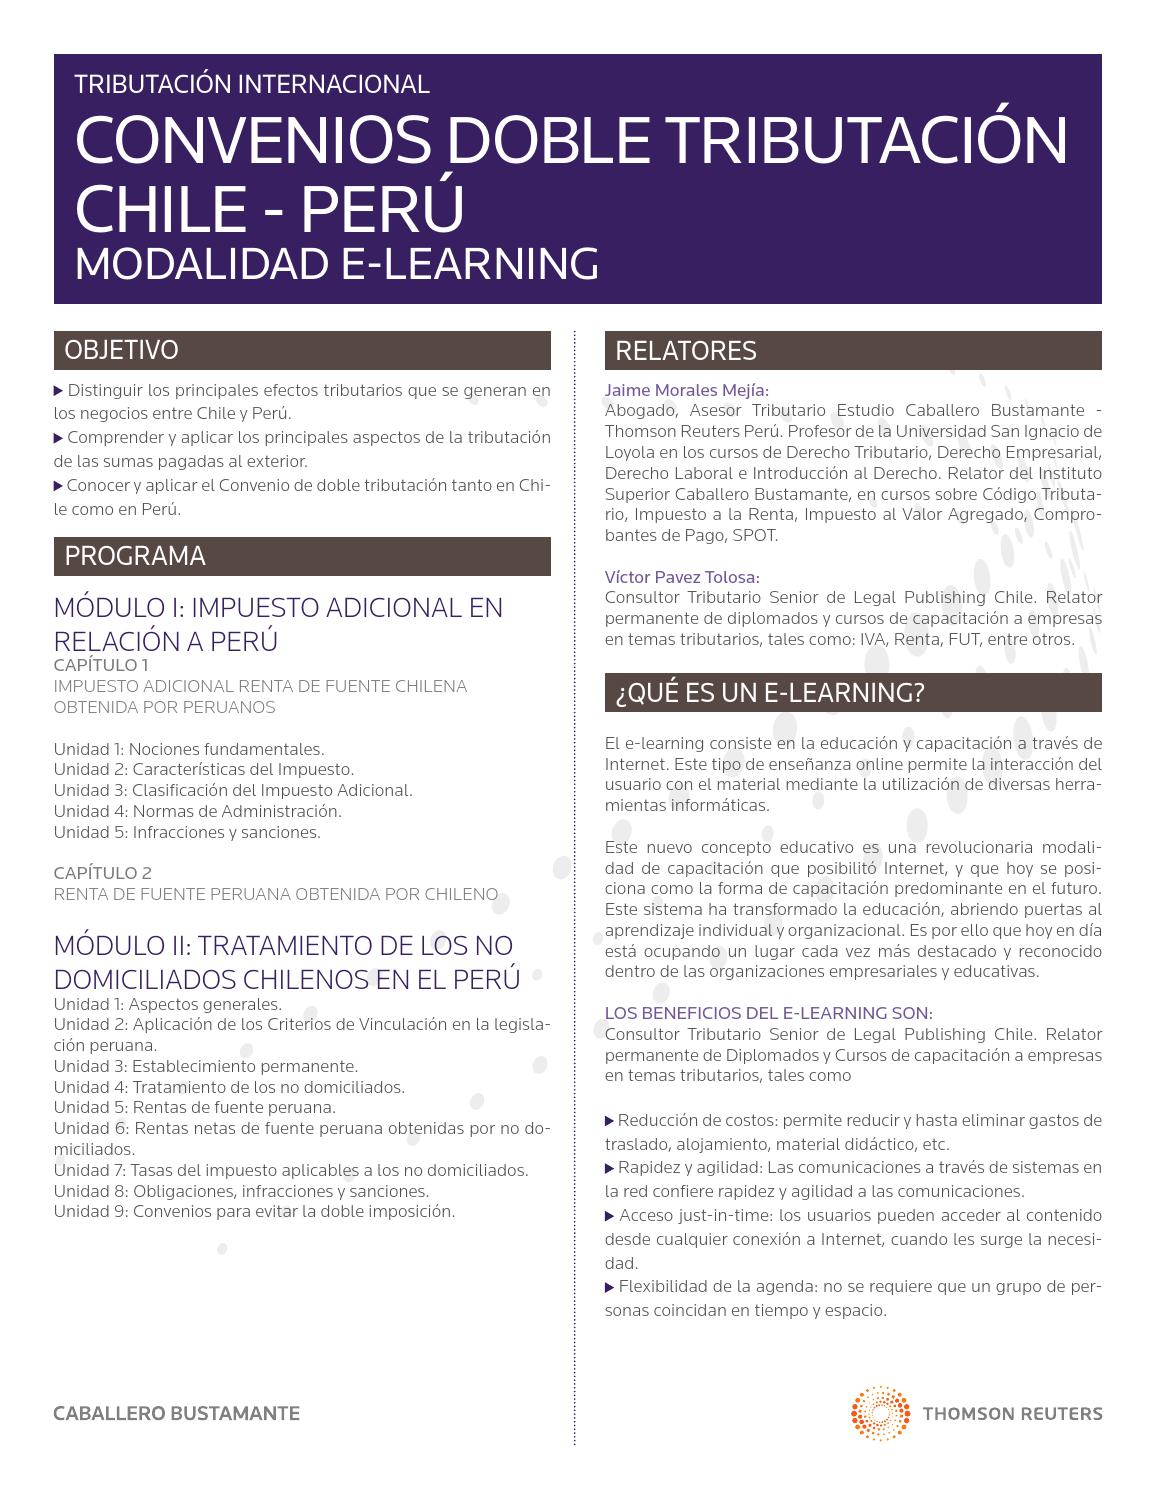 Ficha Convenios Doble Tributación Chile - Perú by